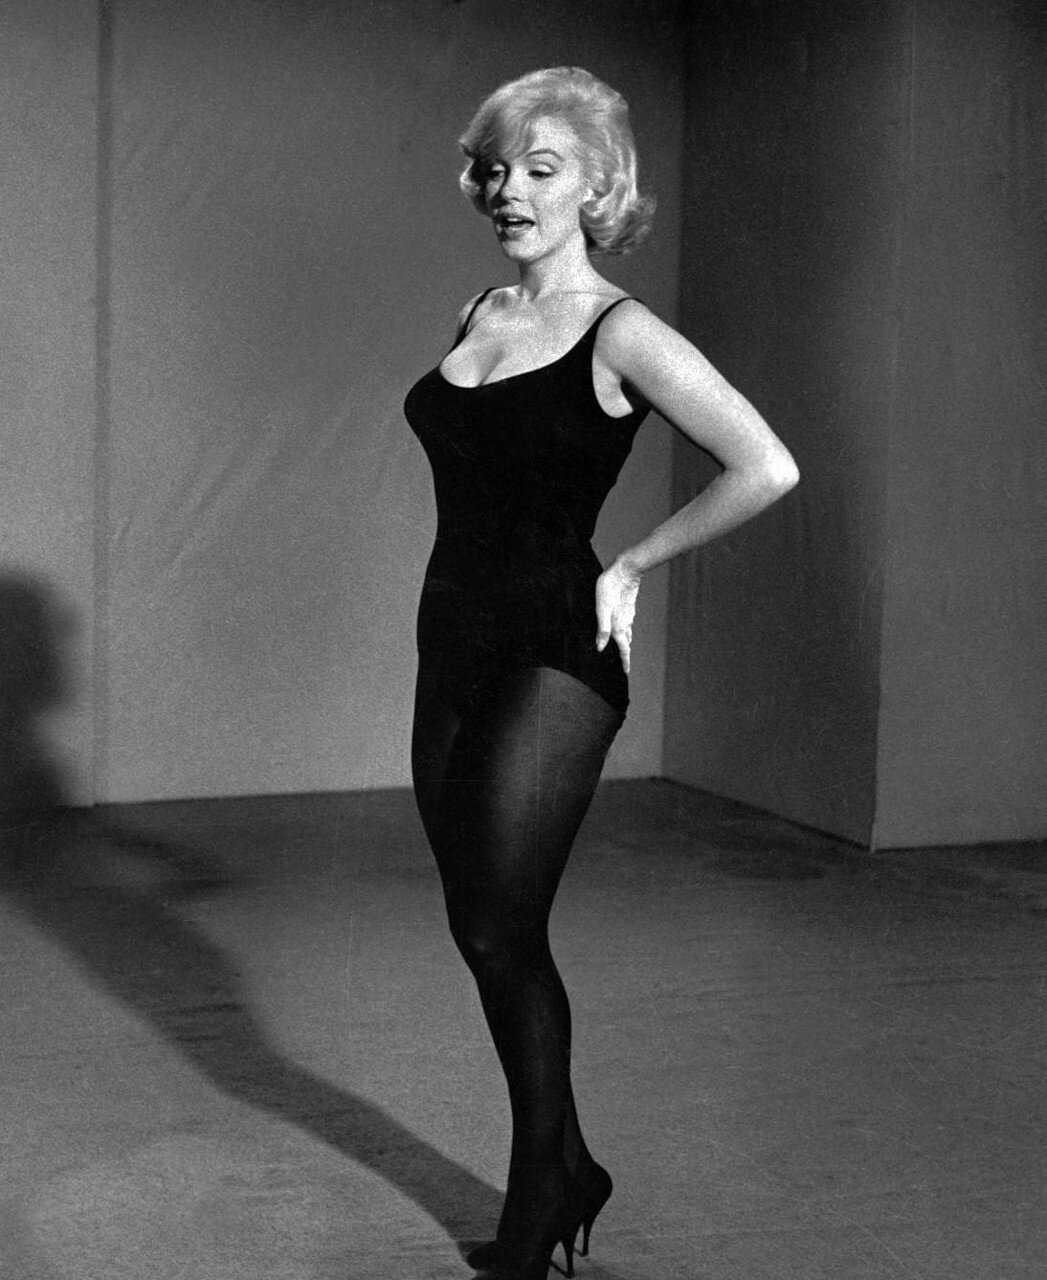 Marilyn Monroe Posing with Her Hands on Her Hips